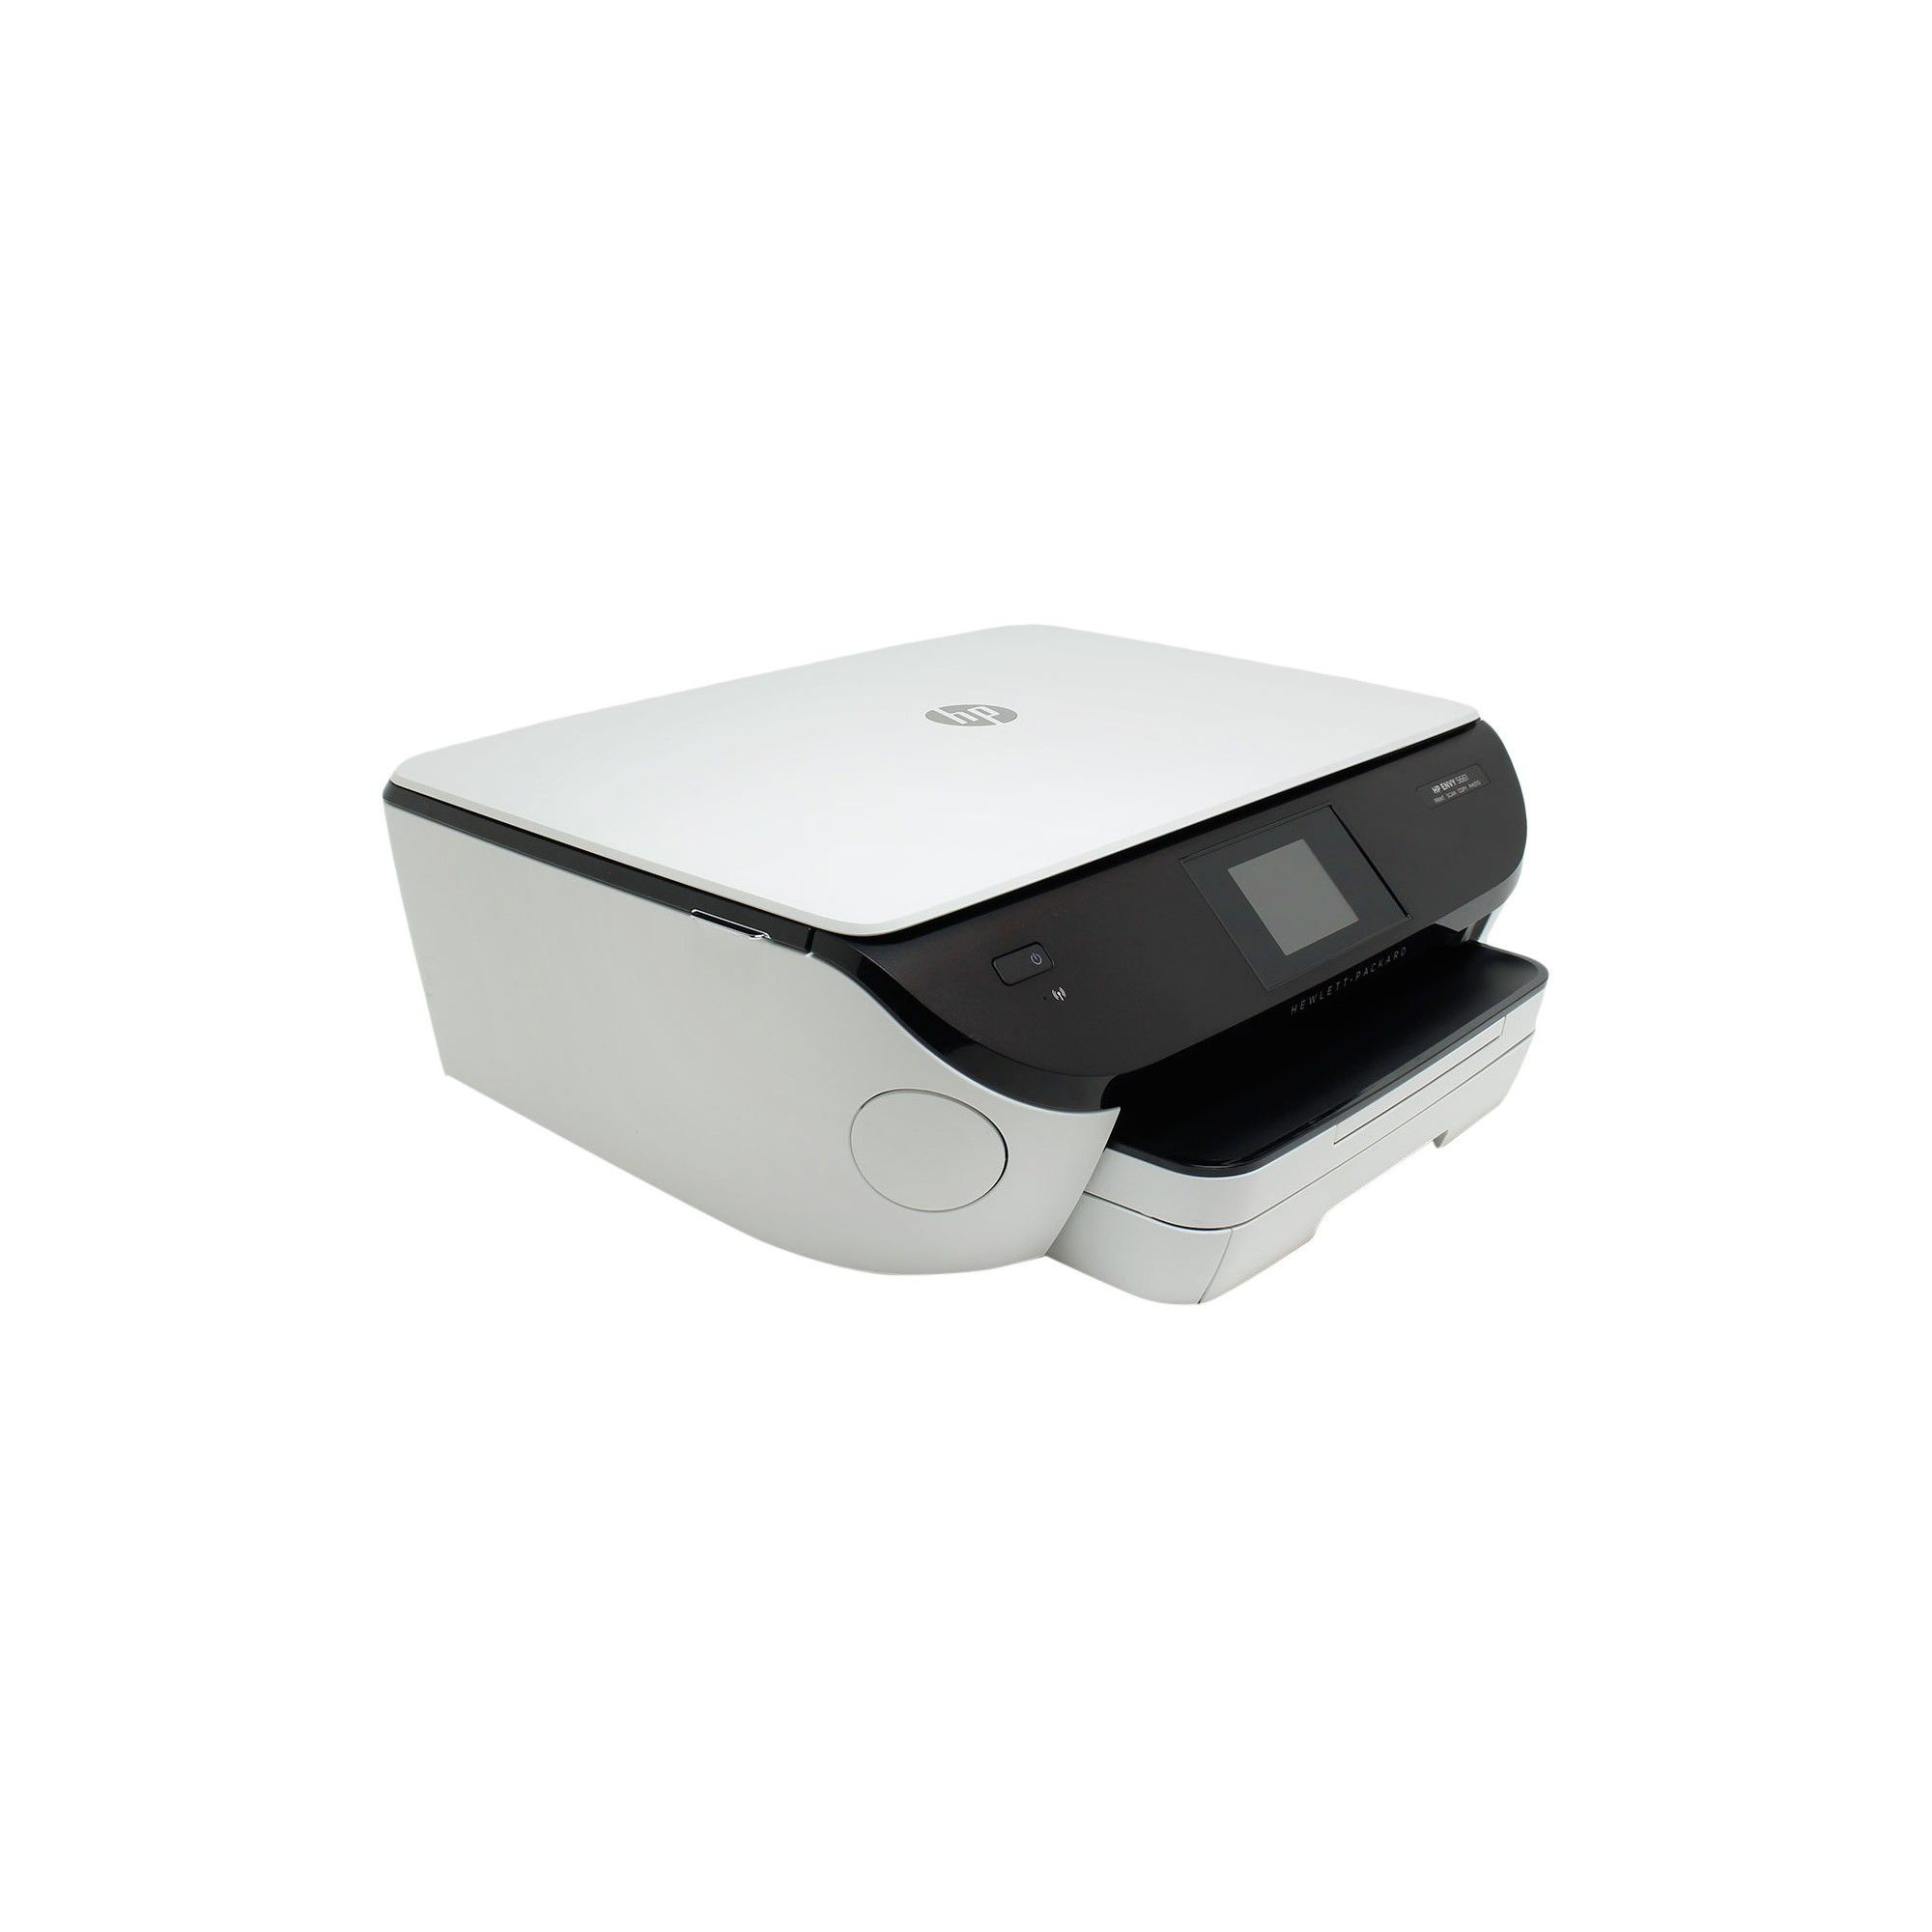 Hp Envy 5660 Wireless All In One Photo Printer With Mobile Printing